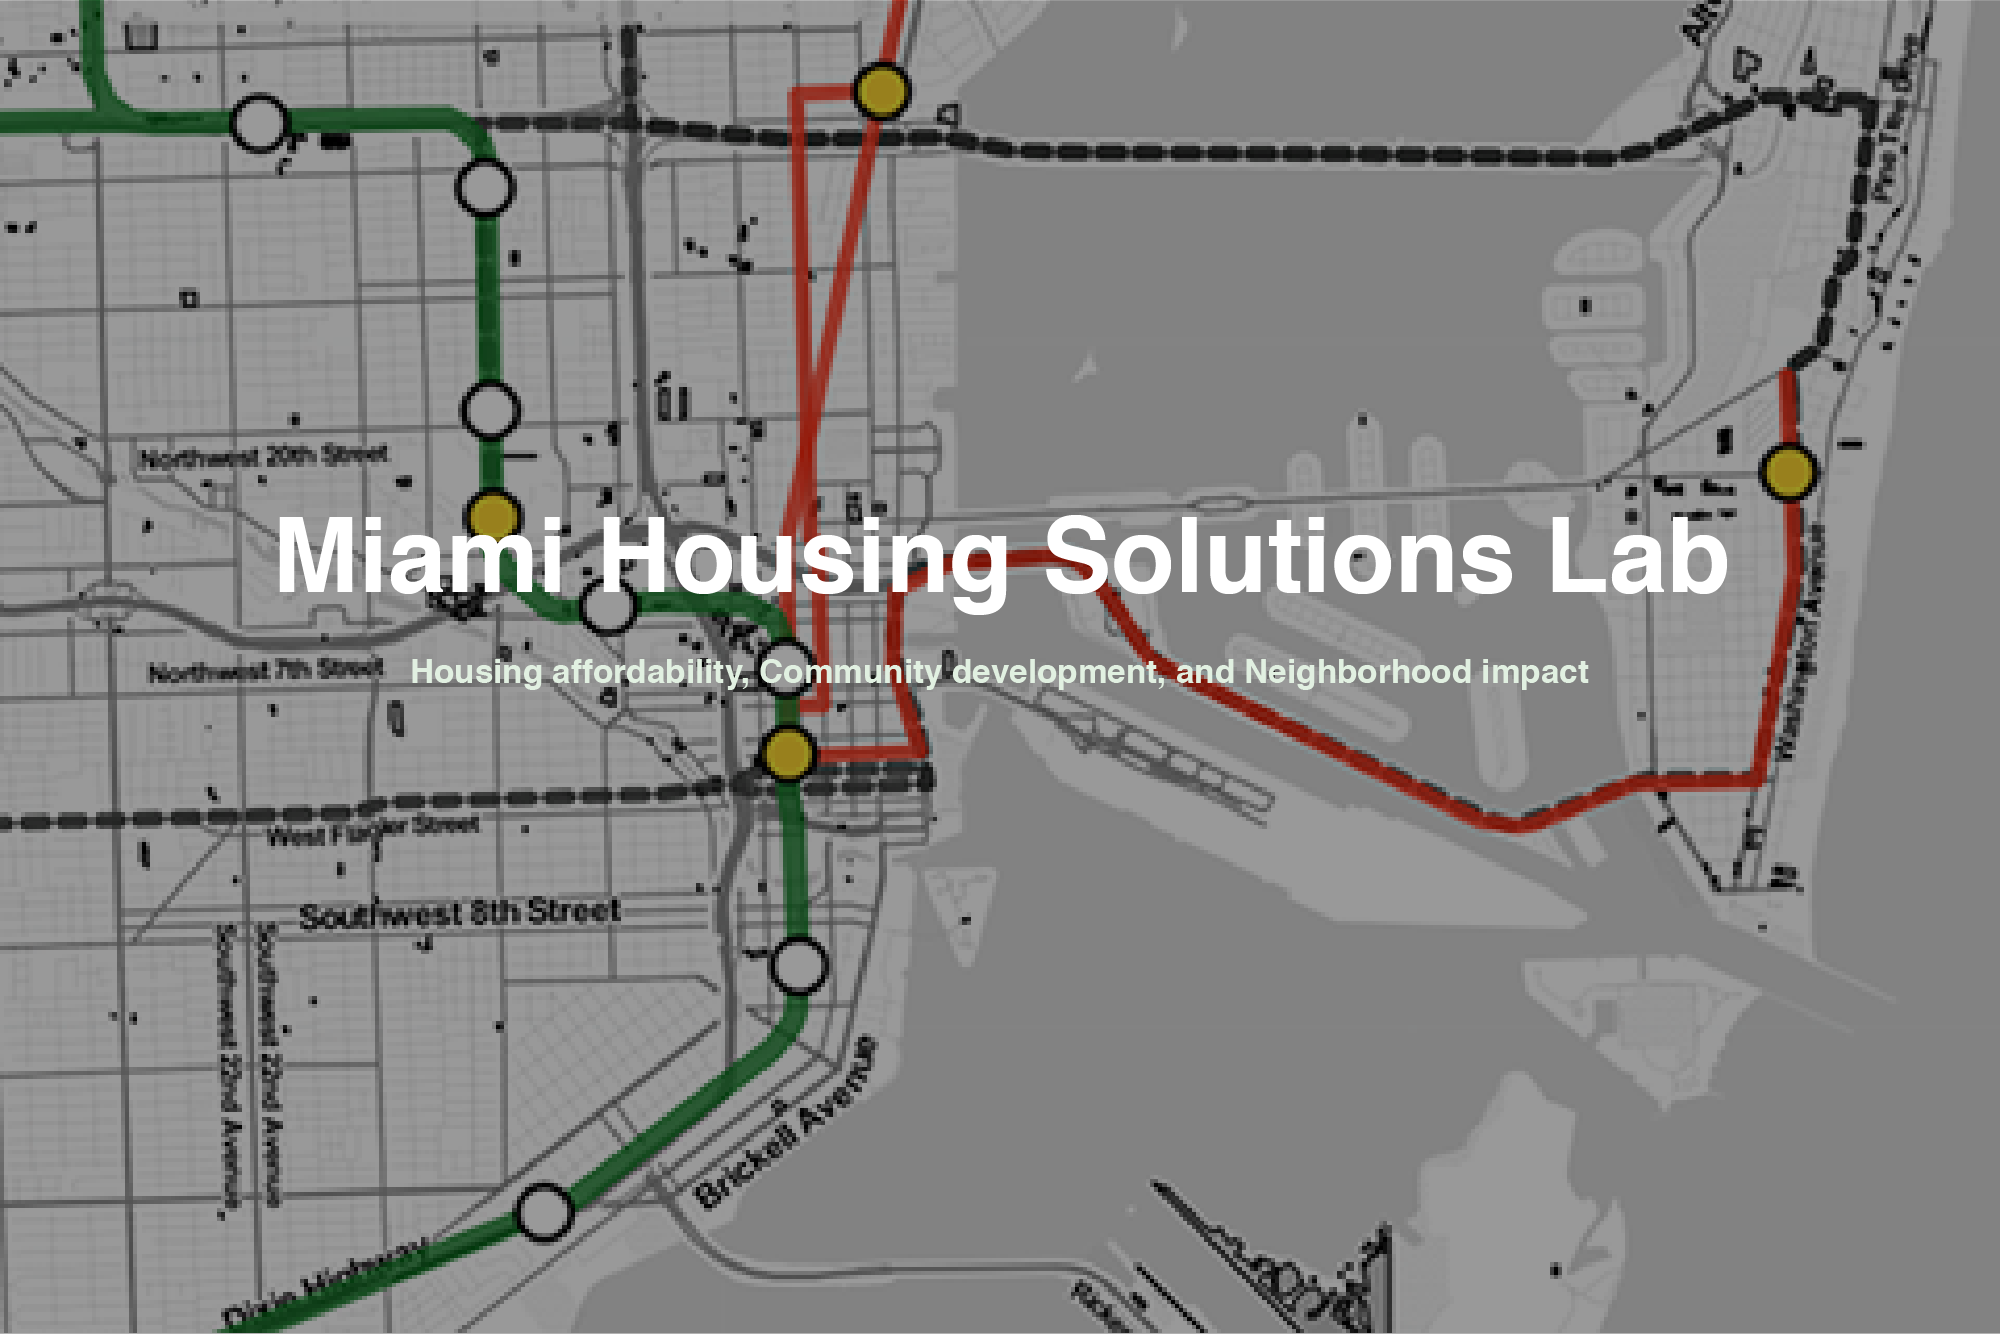 Miami Housing Solutions Lab | Office of Civic and Community ... on central michigan university campus map, national fire academy campus map, lr campus map, university of tokyo campus map, university of maryland eastern shore campus map, university of michigan campus map, barry university campus map, smcvt campus map, umd campus map, university at buffalo campus map, miller school of medicine campus map, eastern florida state college campus map, siue campus map, university of central missouri campus map, u of i campus map, university hospital campus map, university of montevallo campus map, umich campus map, wmu campus map,